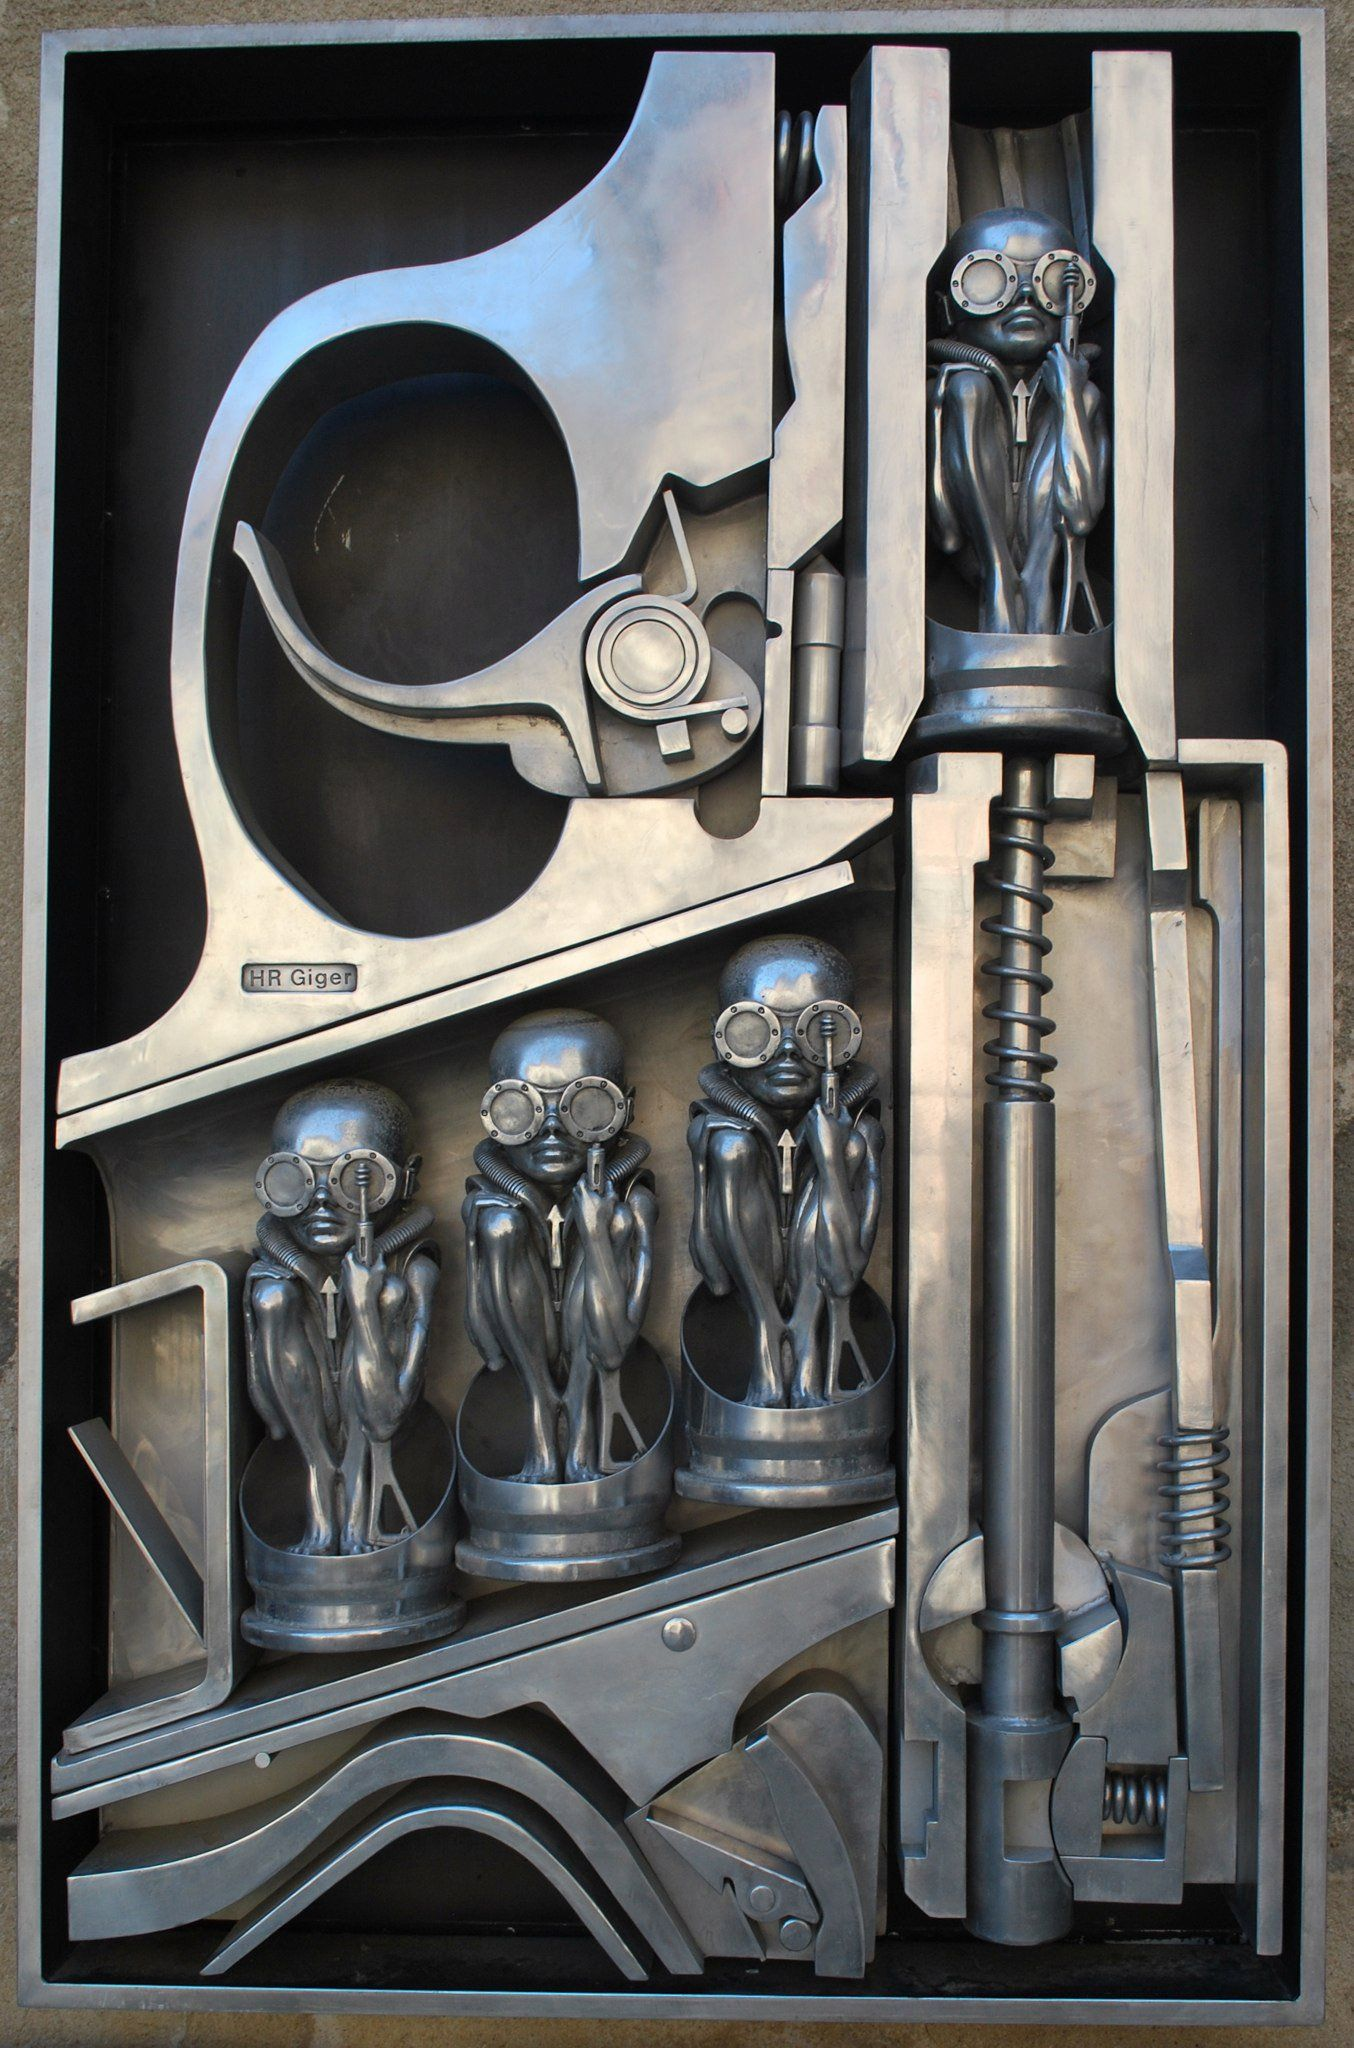 Til Late Artist Hr Giger Decorated His House Like His Art And Included A Haunted Train Ride And A Penis Guillotine